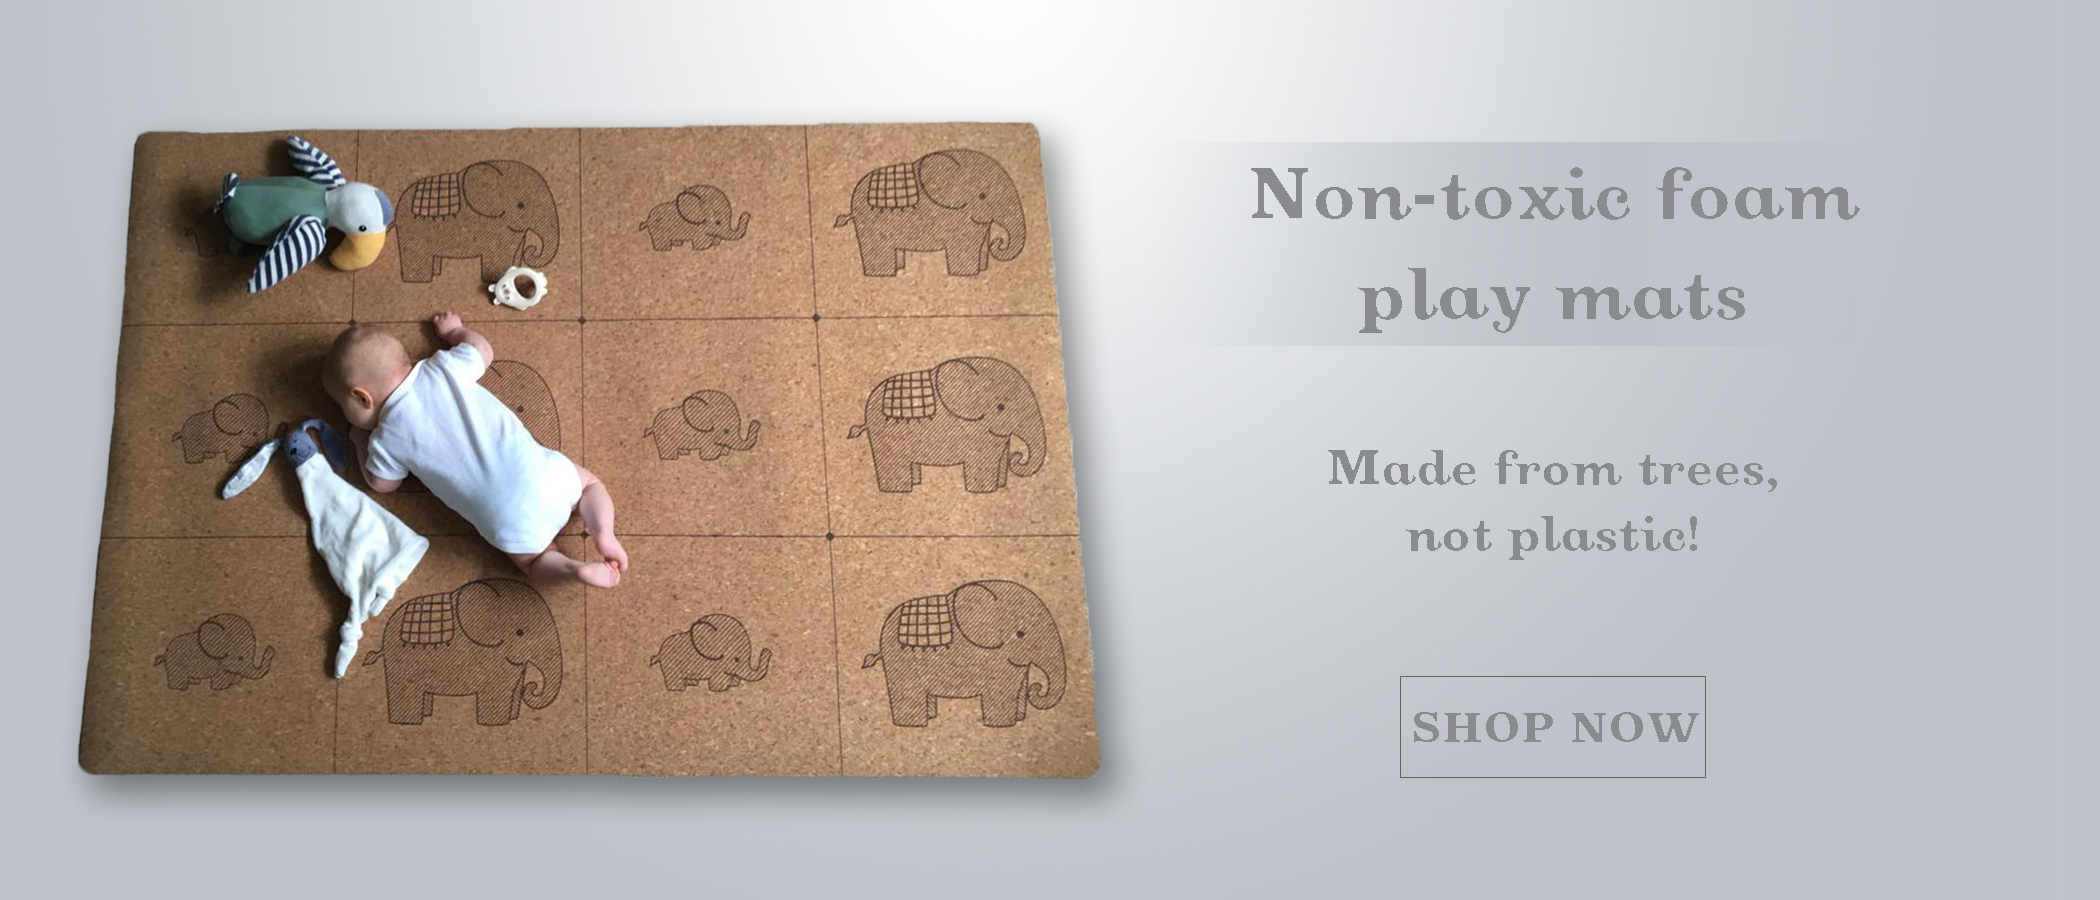 squarespace play mat1.jpg